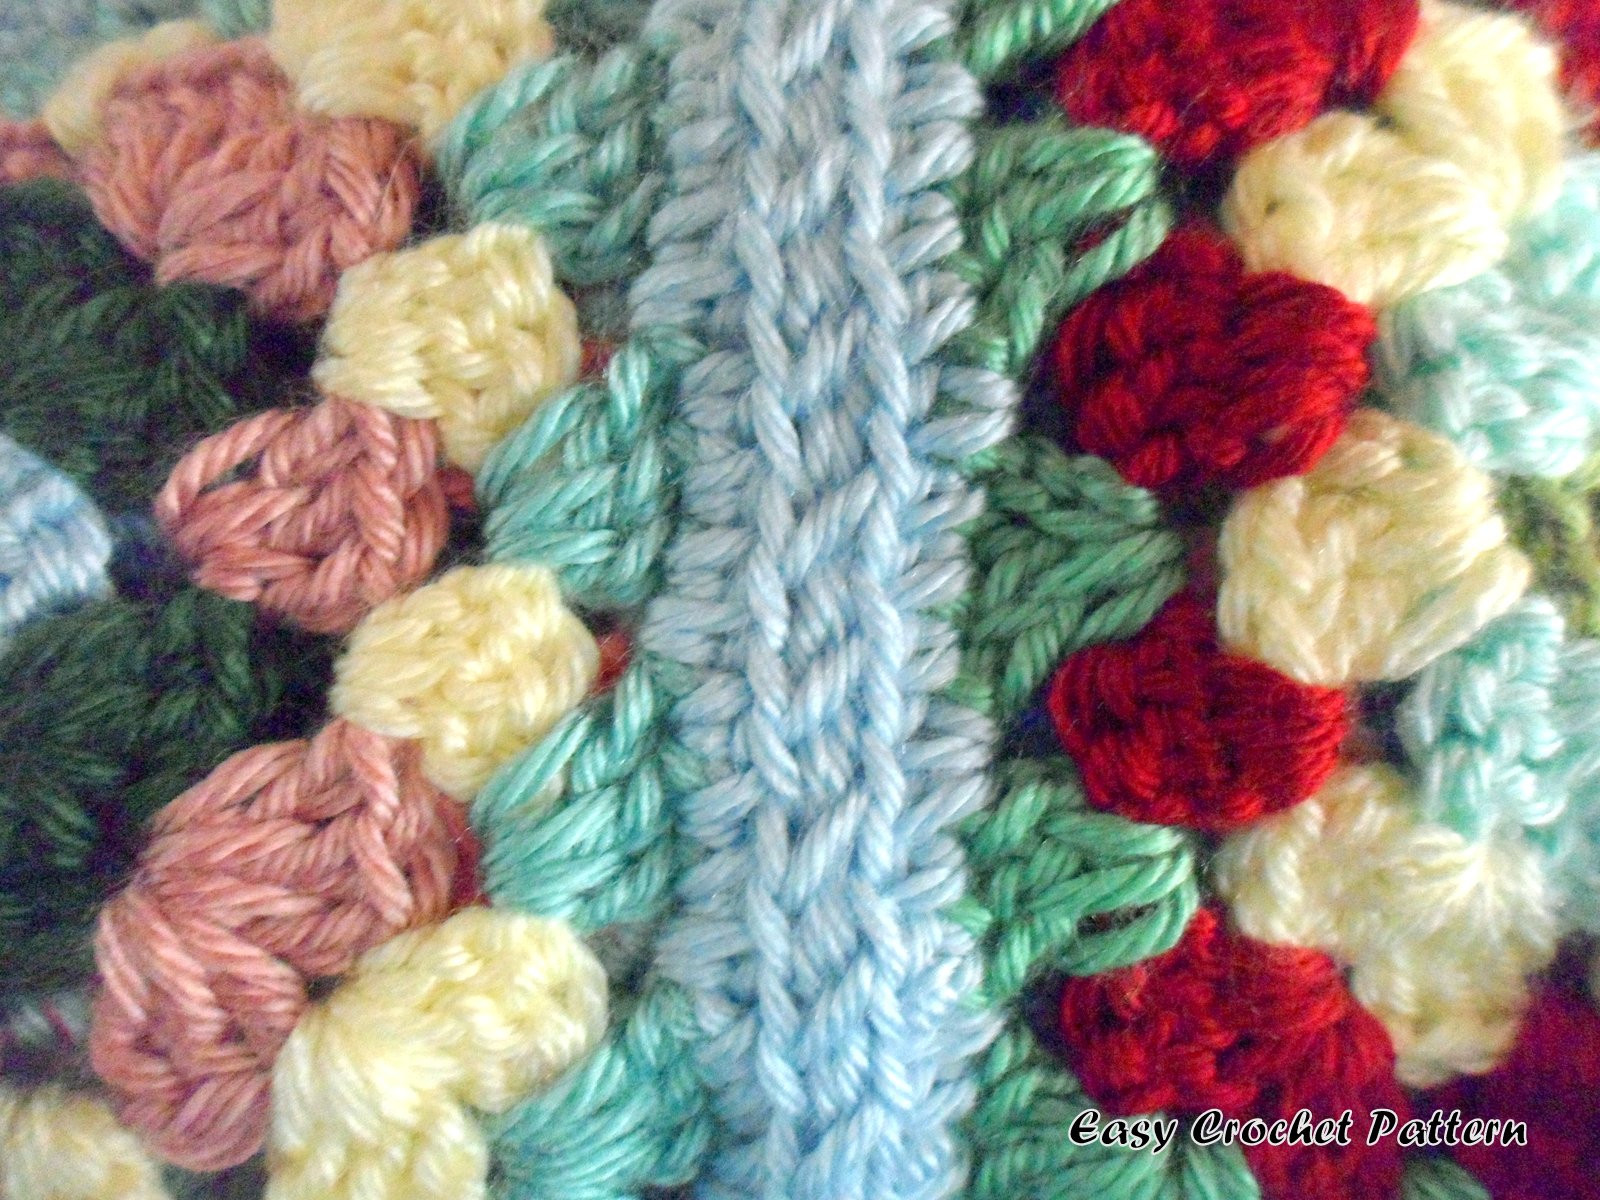 Awesome Easy Crochet Pattern Cath Kidston Granny Square Afghan Finish Crochet Granny Squares together Of Marvelous 48 Pictures Crochet Granny Squares together